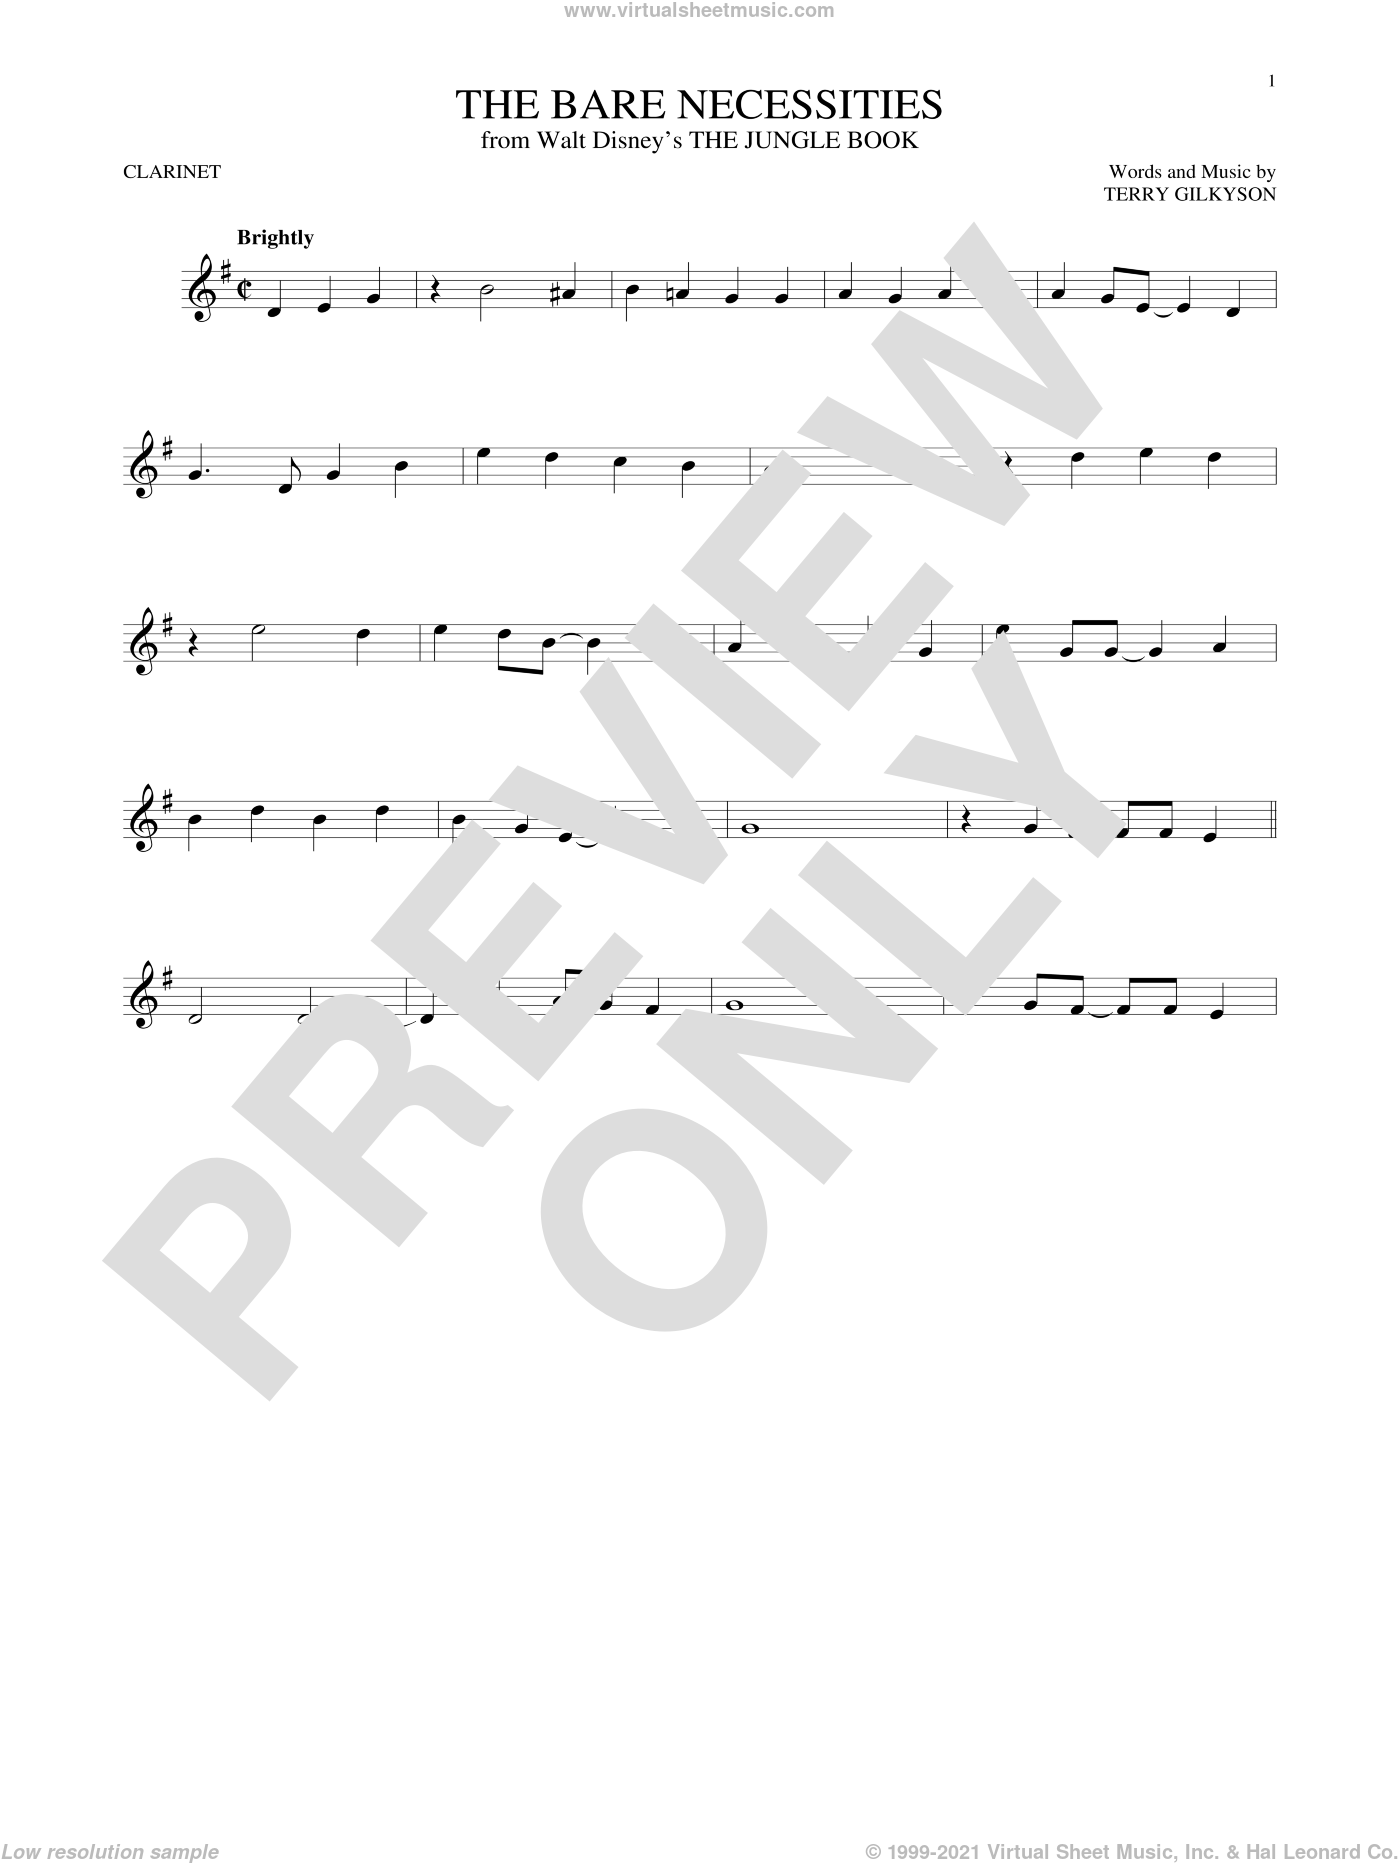 The Bare Necessities sheet music for clarinet solo by Terry Gilkyson, intermediate skill level